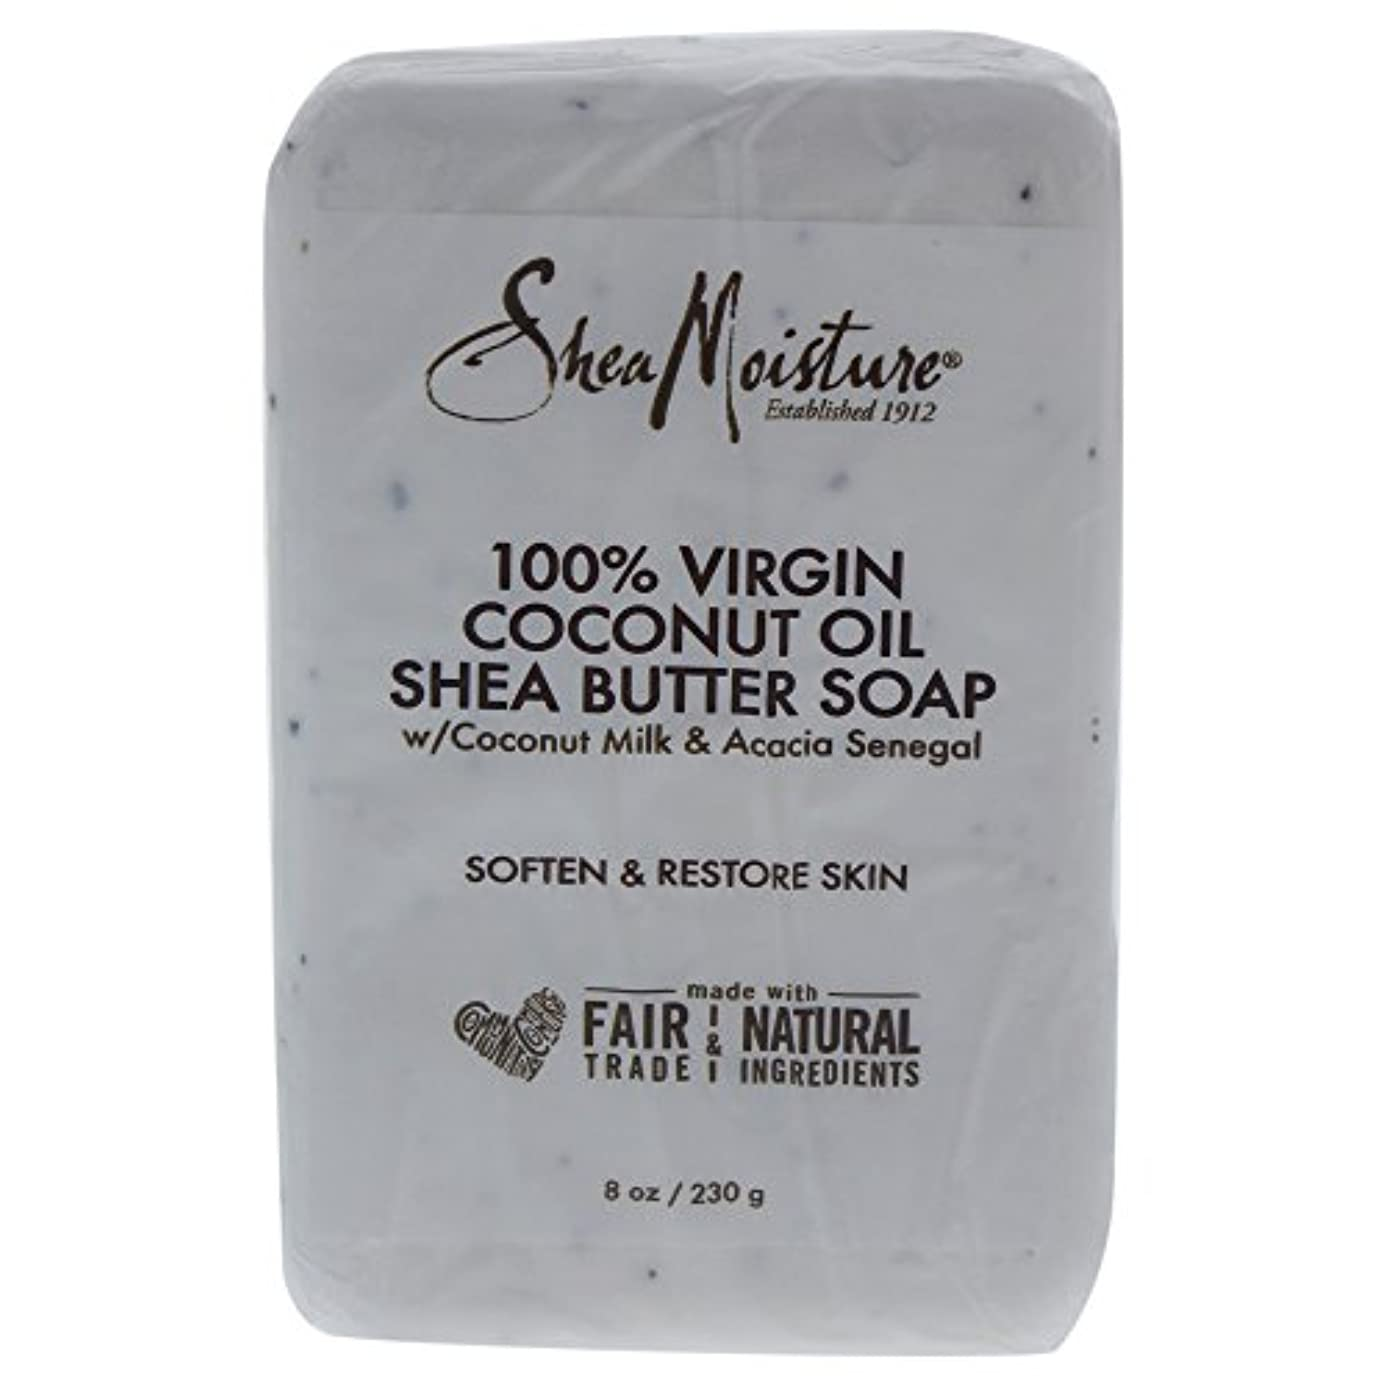 活気づける正しくしなやかShea Moisture バーソープ (100% Virgin Coconut Oil Shea Butter Soap)